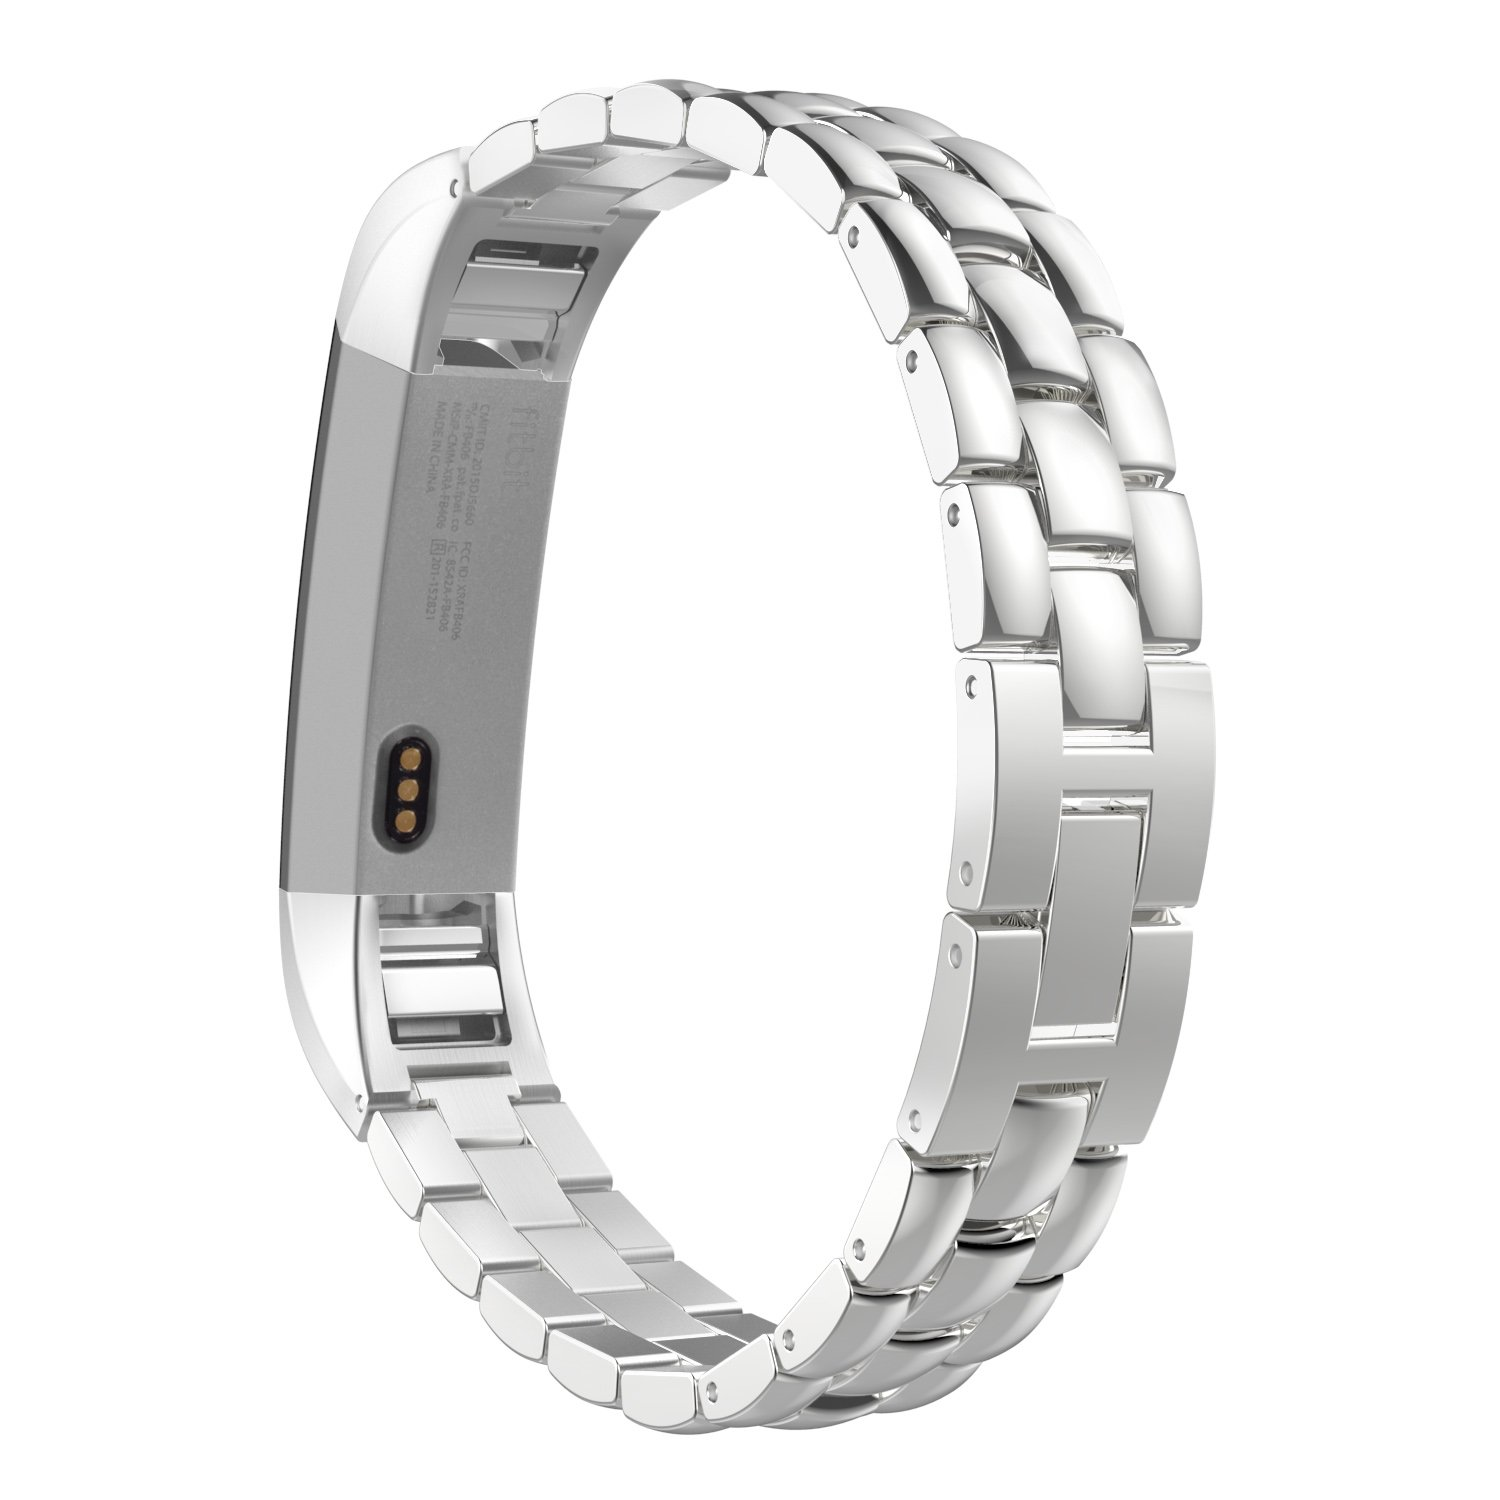 MoKo Fitbit Alta HR and Alta Band, Universal Stainless Steel Replacement Watch Bracelet Band Strap with Fold Over Clasp for Fitbit Alta / Fitbit Alta HR, Tracker NOT Included - SILVER